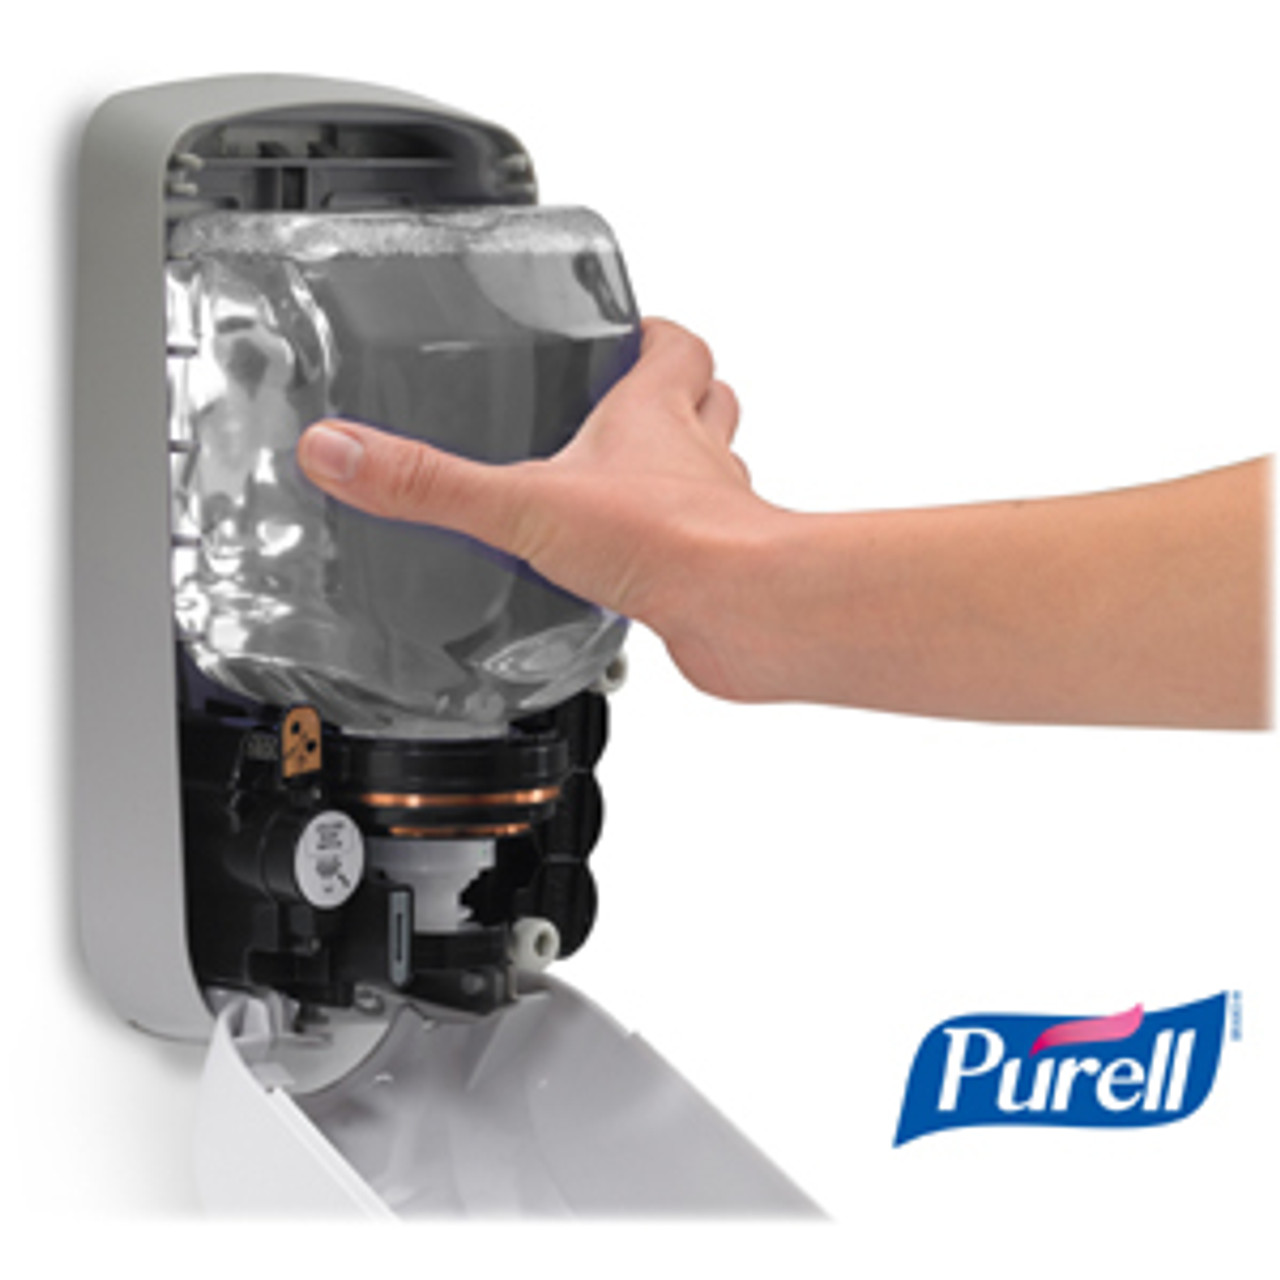 PURELL® TFX Touch-free Sanitizer Dispenser - Automatic - 1.27 quart Capacity - Support 3 x C Battery - Gray - 1Each